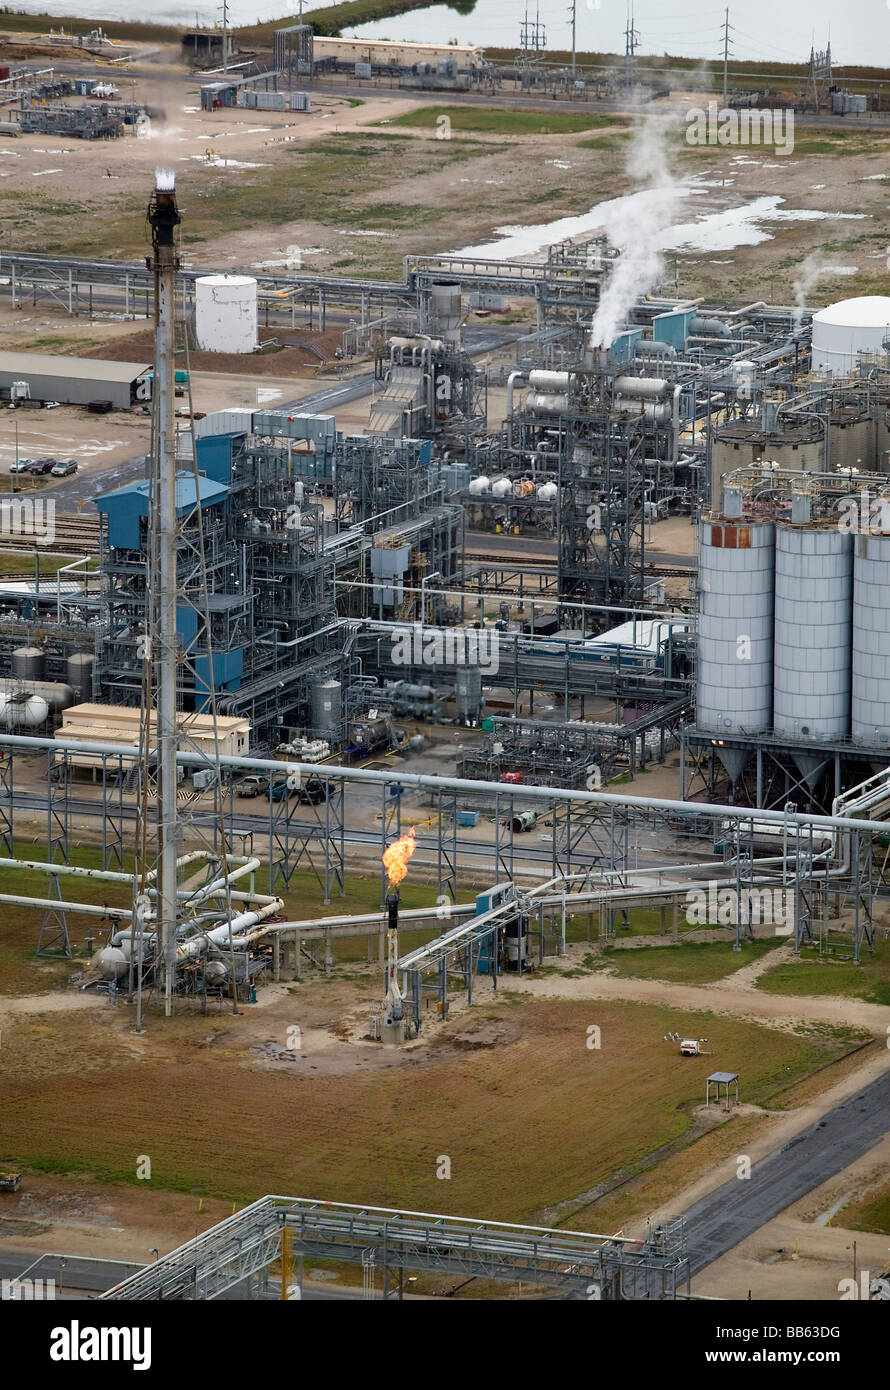 aerial view above Texas Gulf Coast refinery - Stock Image